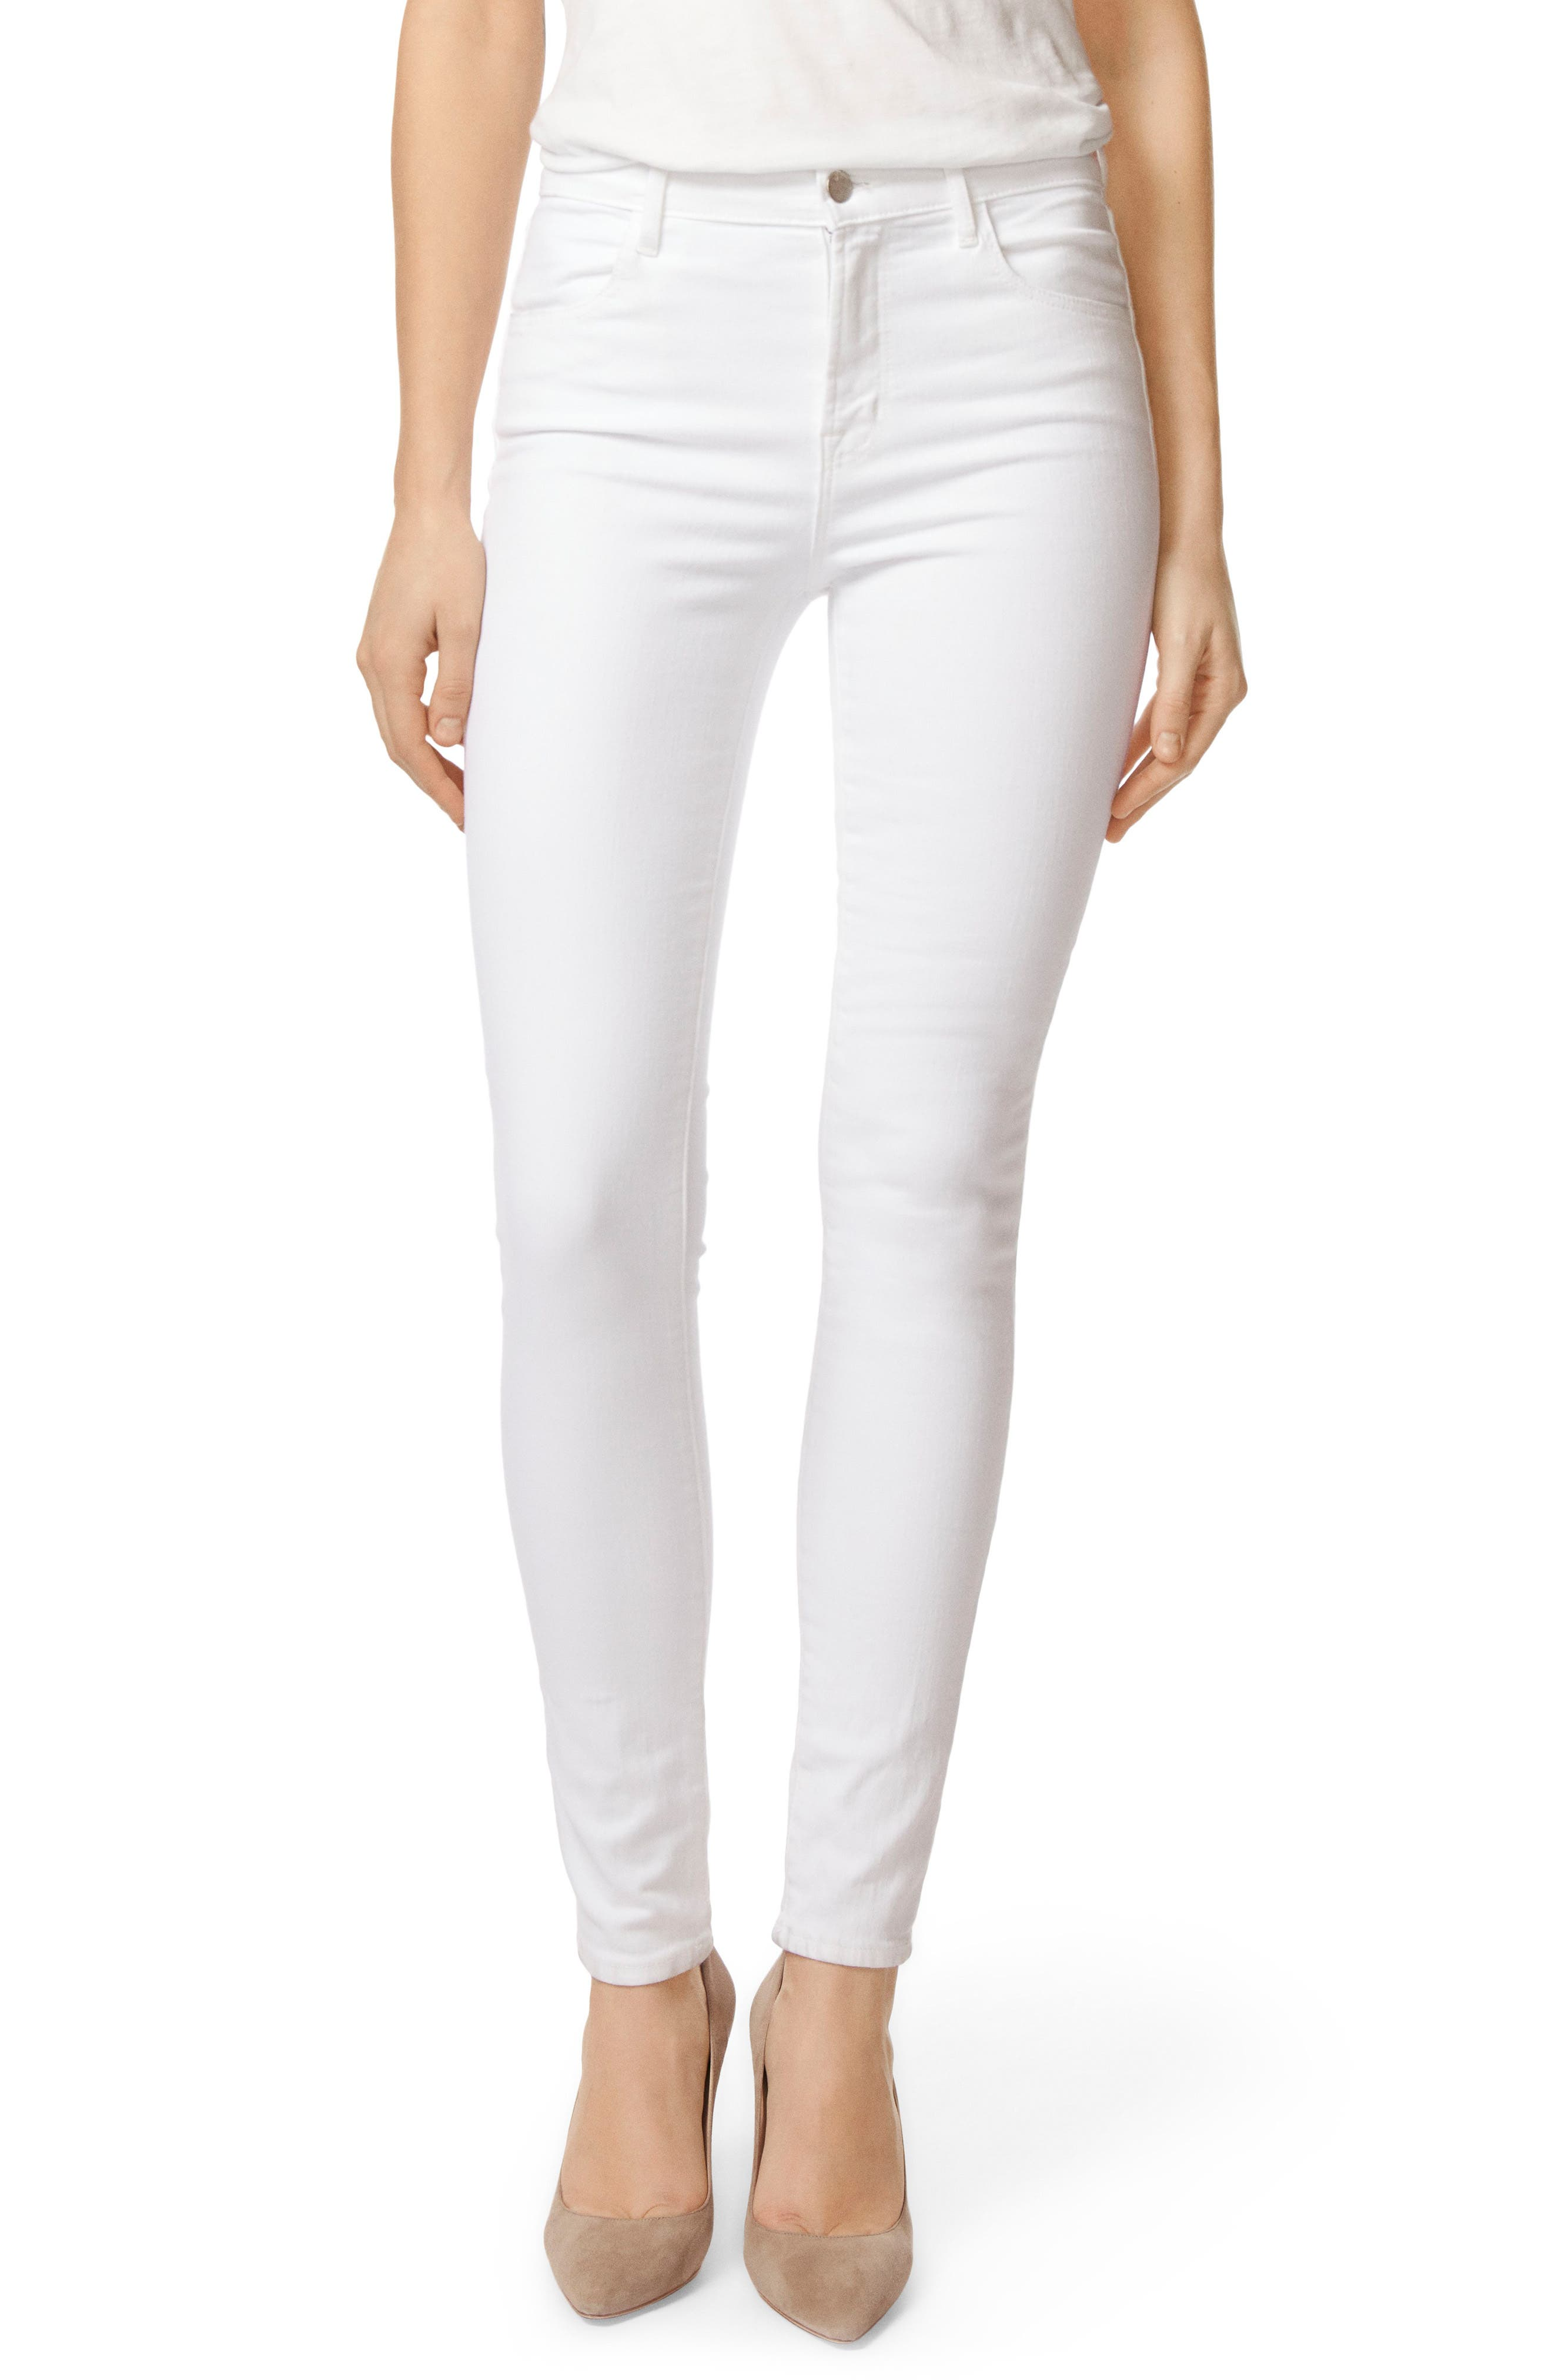 2311 Maria High Waist Super Skinny Jeans,                             Main thumbnail 1, color,                             Blanc